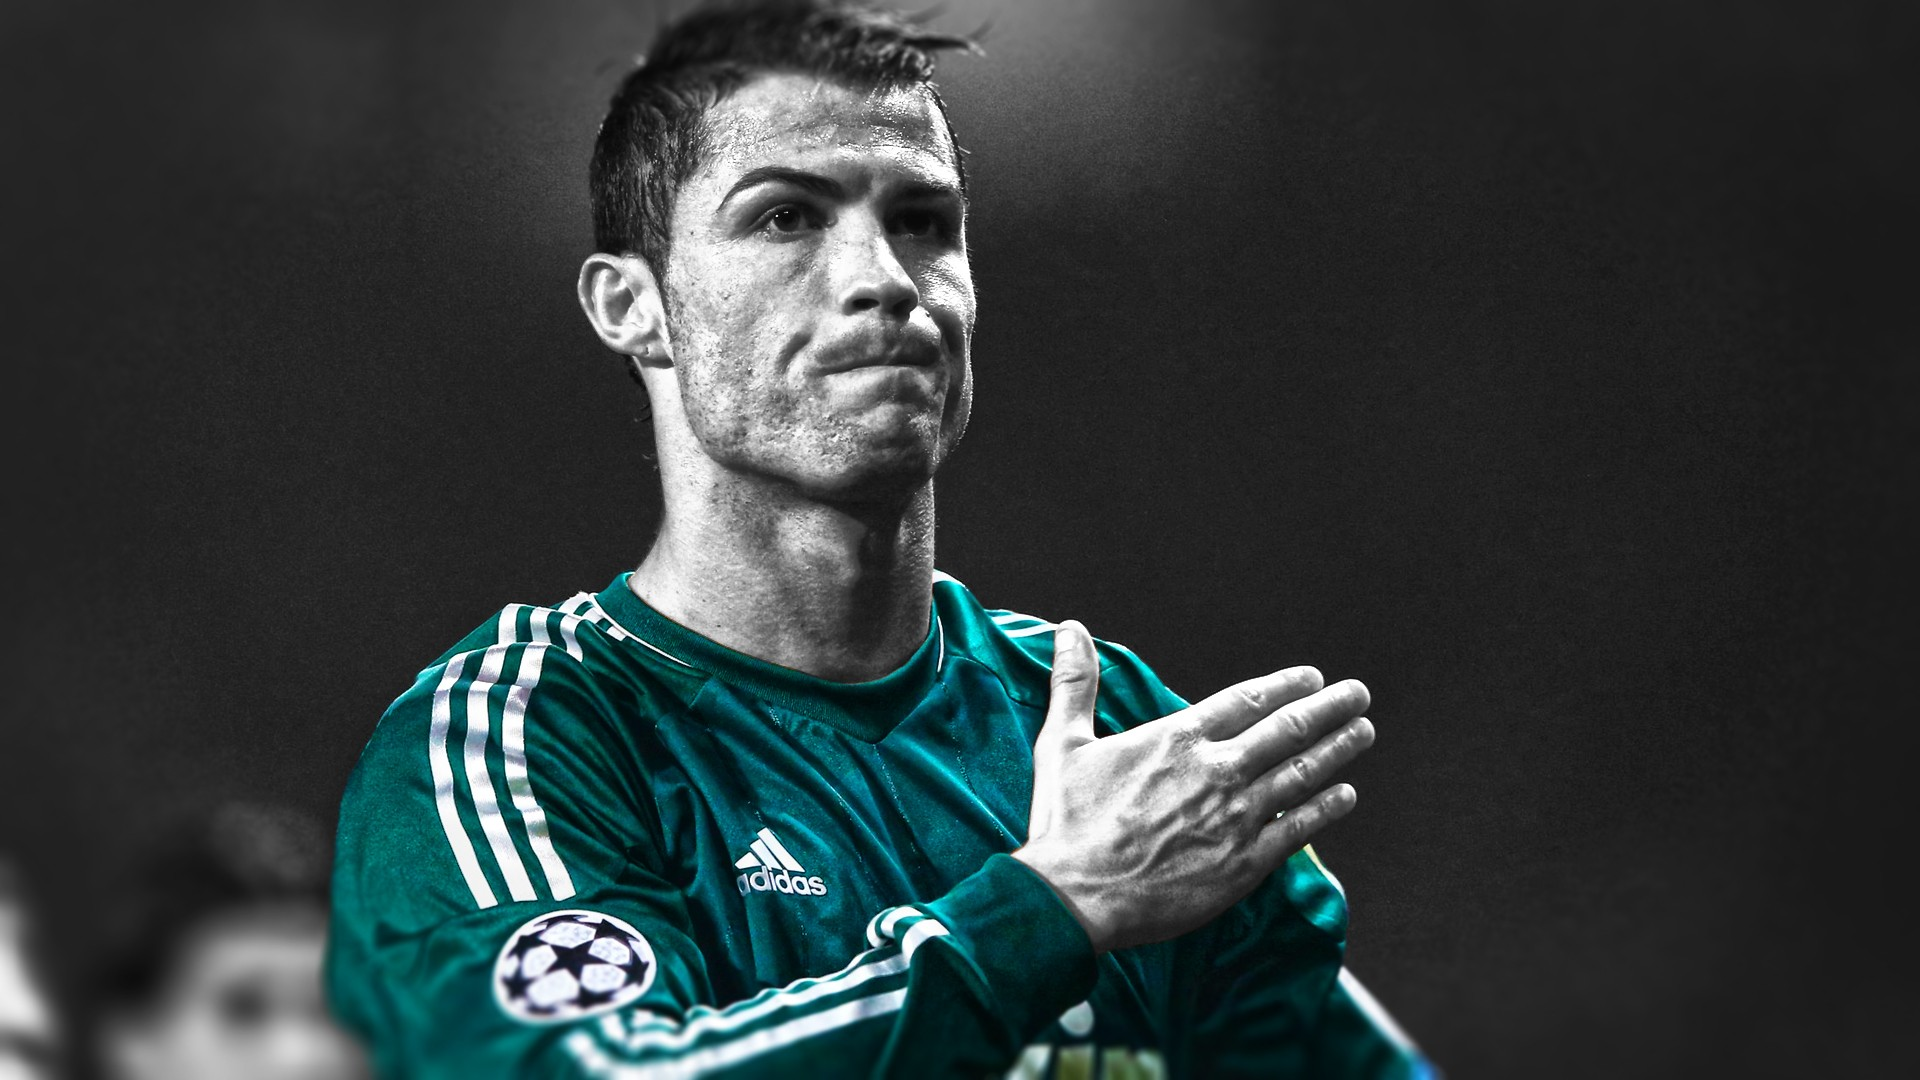 Cristiano Ronaldo HD Wallpapers 1920x1080